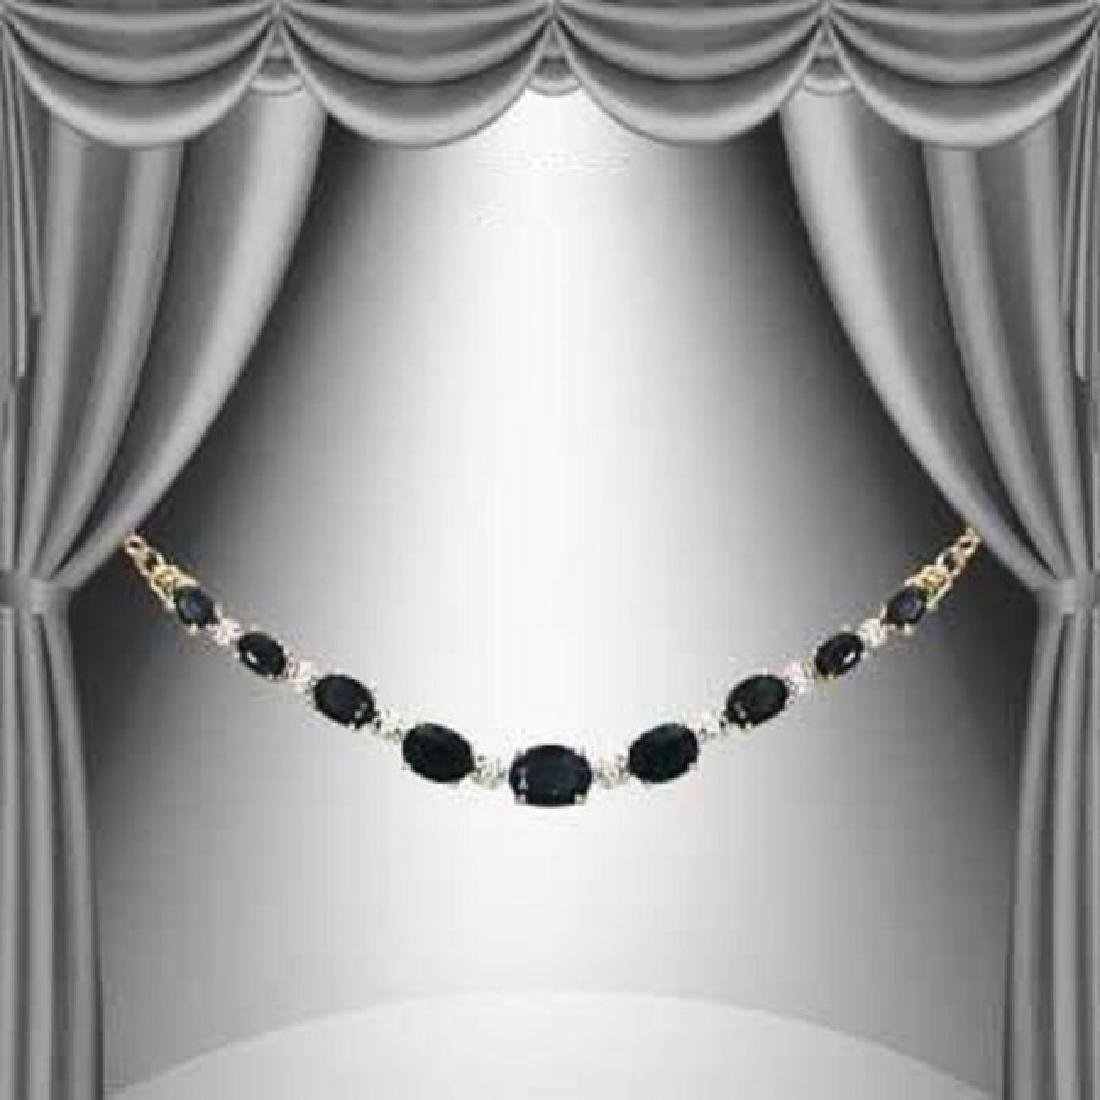 11.27 CT Black Sapphire & Diamond Necklace $1580